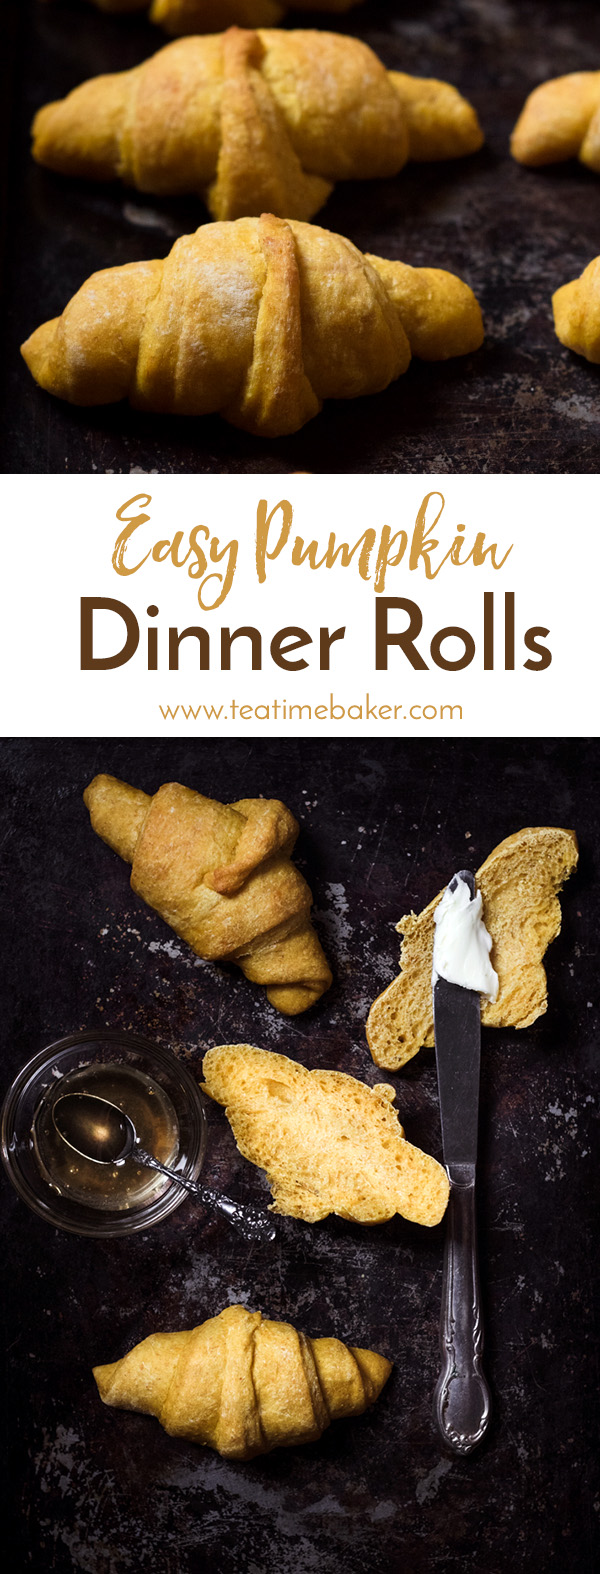 Beautifully soft and golden these Easy Pumpkin Dinner Rolls are the perfect side dish for Thanksgiving dinner. Try to save a few for breakfast too! | Bread Recipe | The Teatime Baker | Holiday Baking | Thanksgiving side dish | #easypumpkinrolls